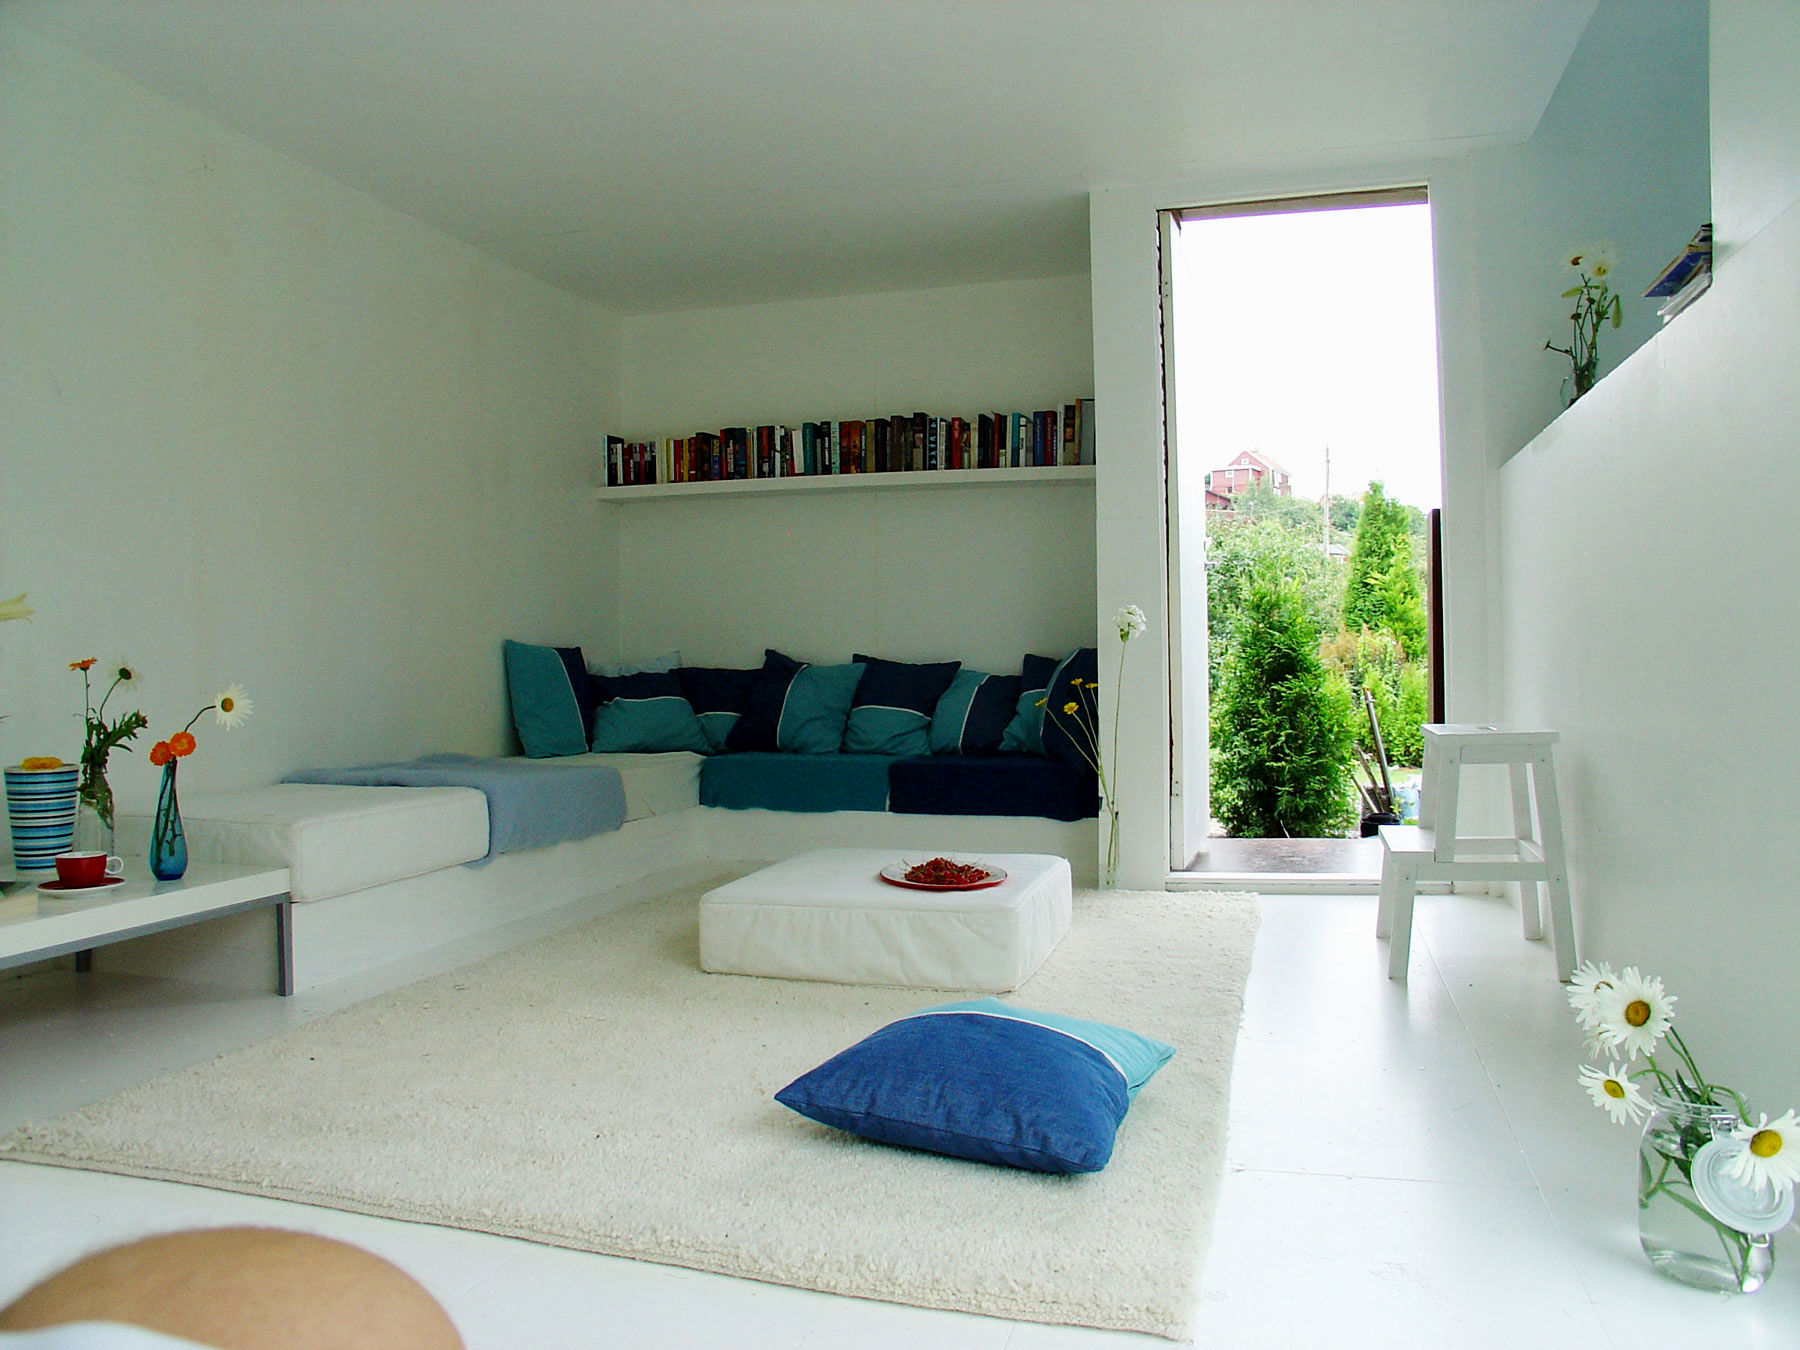 elegant modern sofa bed architecture-Lovely Modern sofa Bed Photograph